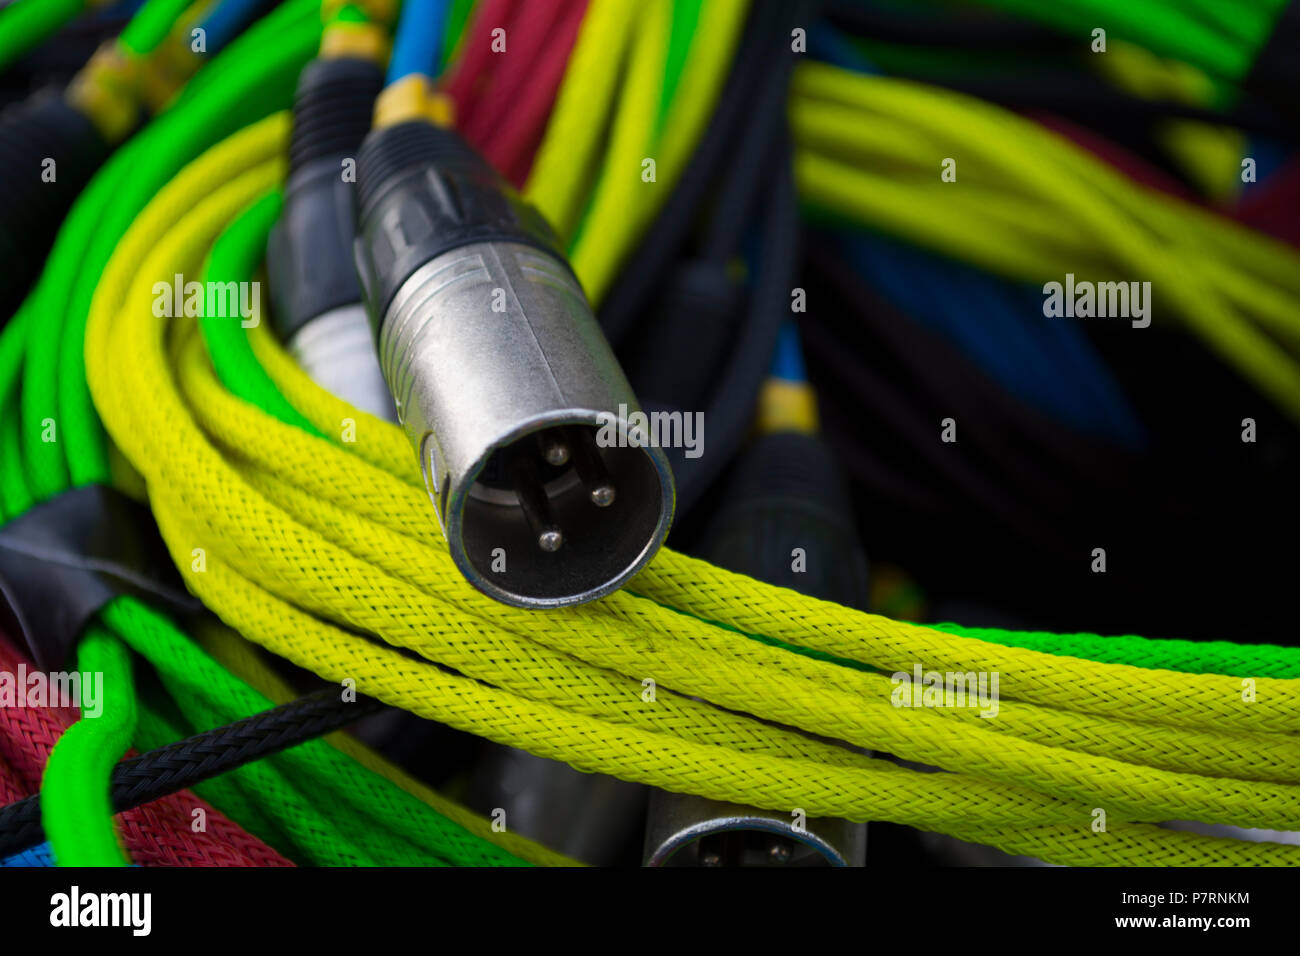 audio xlr cable network with a variety of colors stock photo rh alamy com